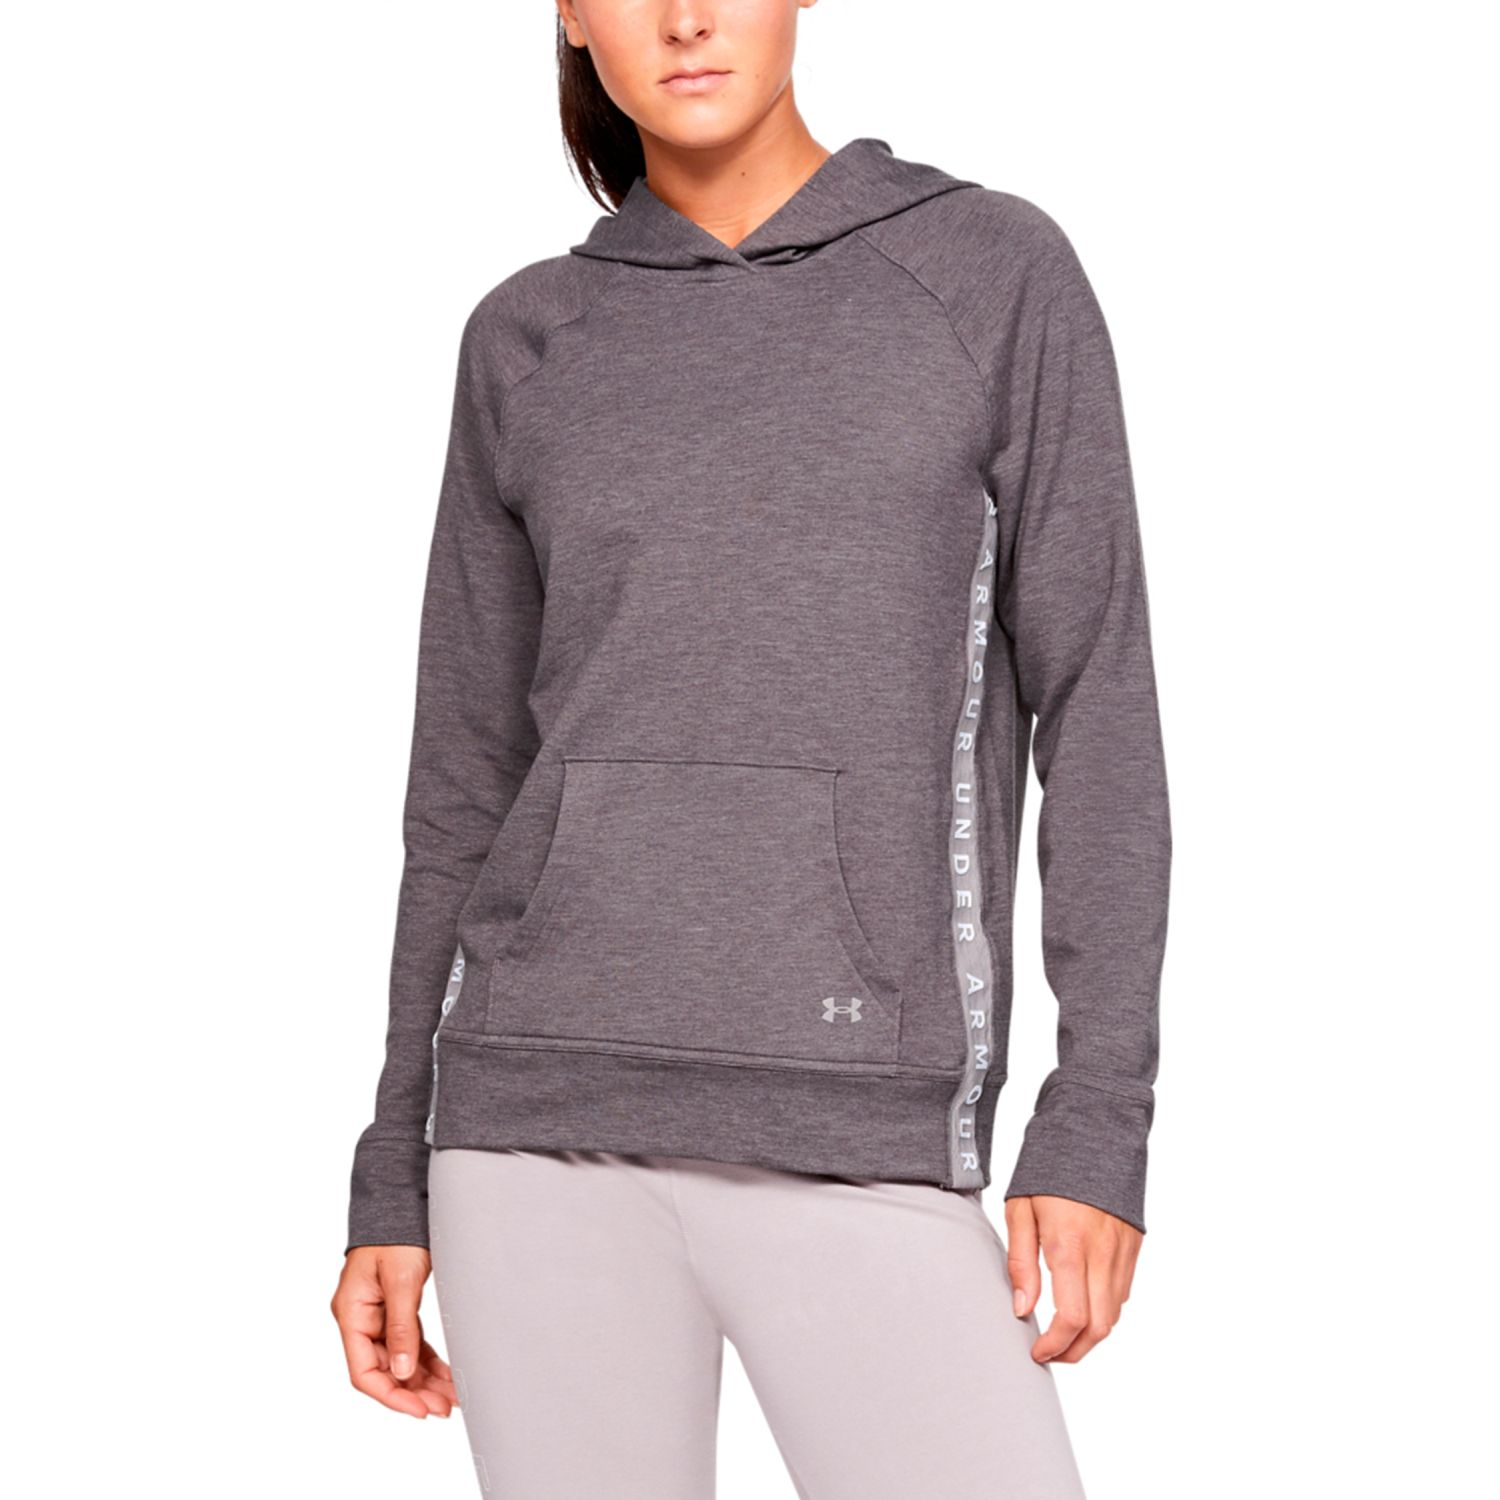 Under Armour Featherwt Fl Hoody Gris Hoodies Deportivos